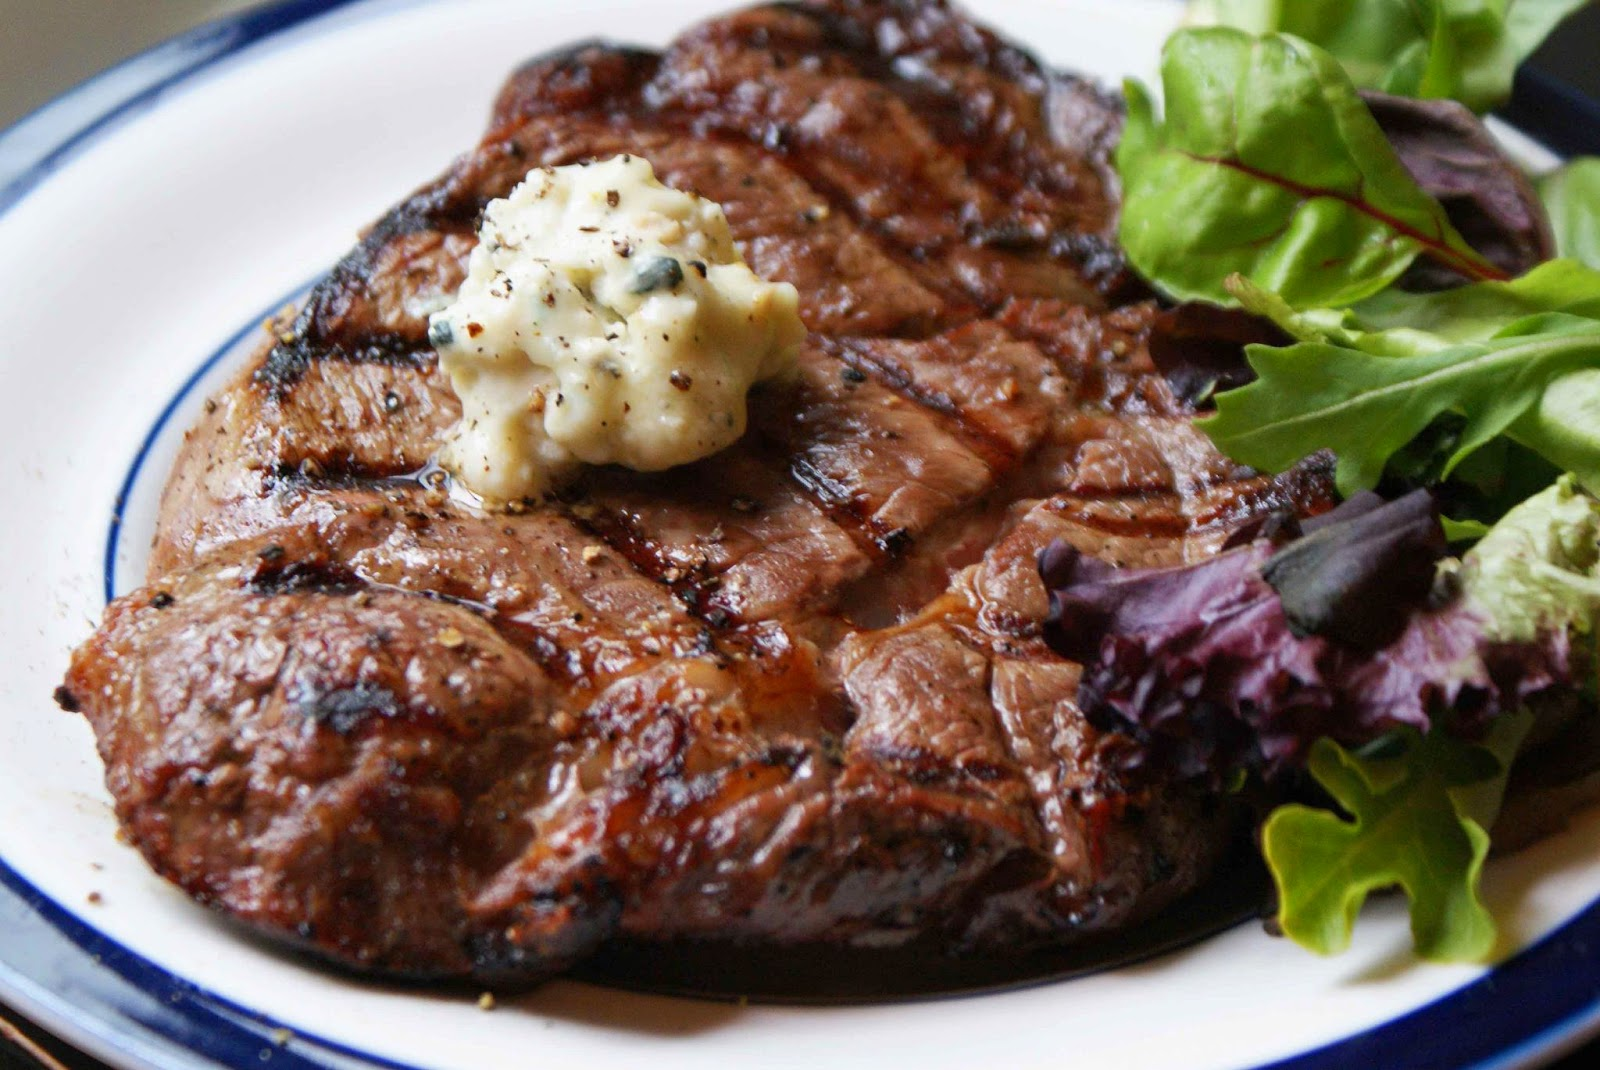 RIB EYE STEAK With Gorgonzola Butter